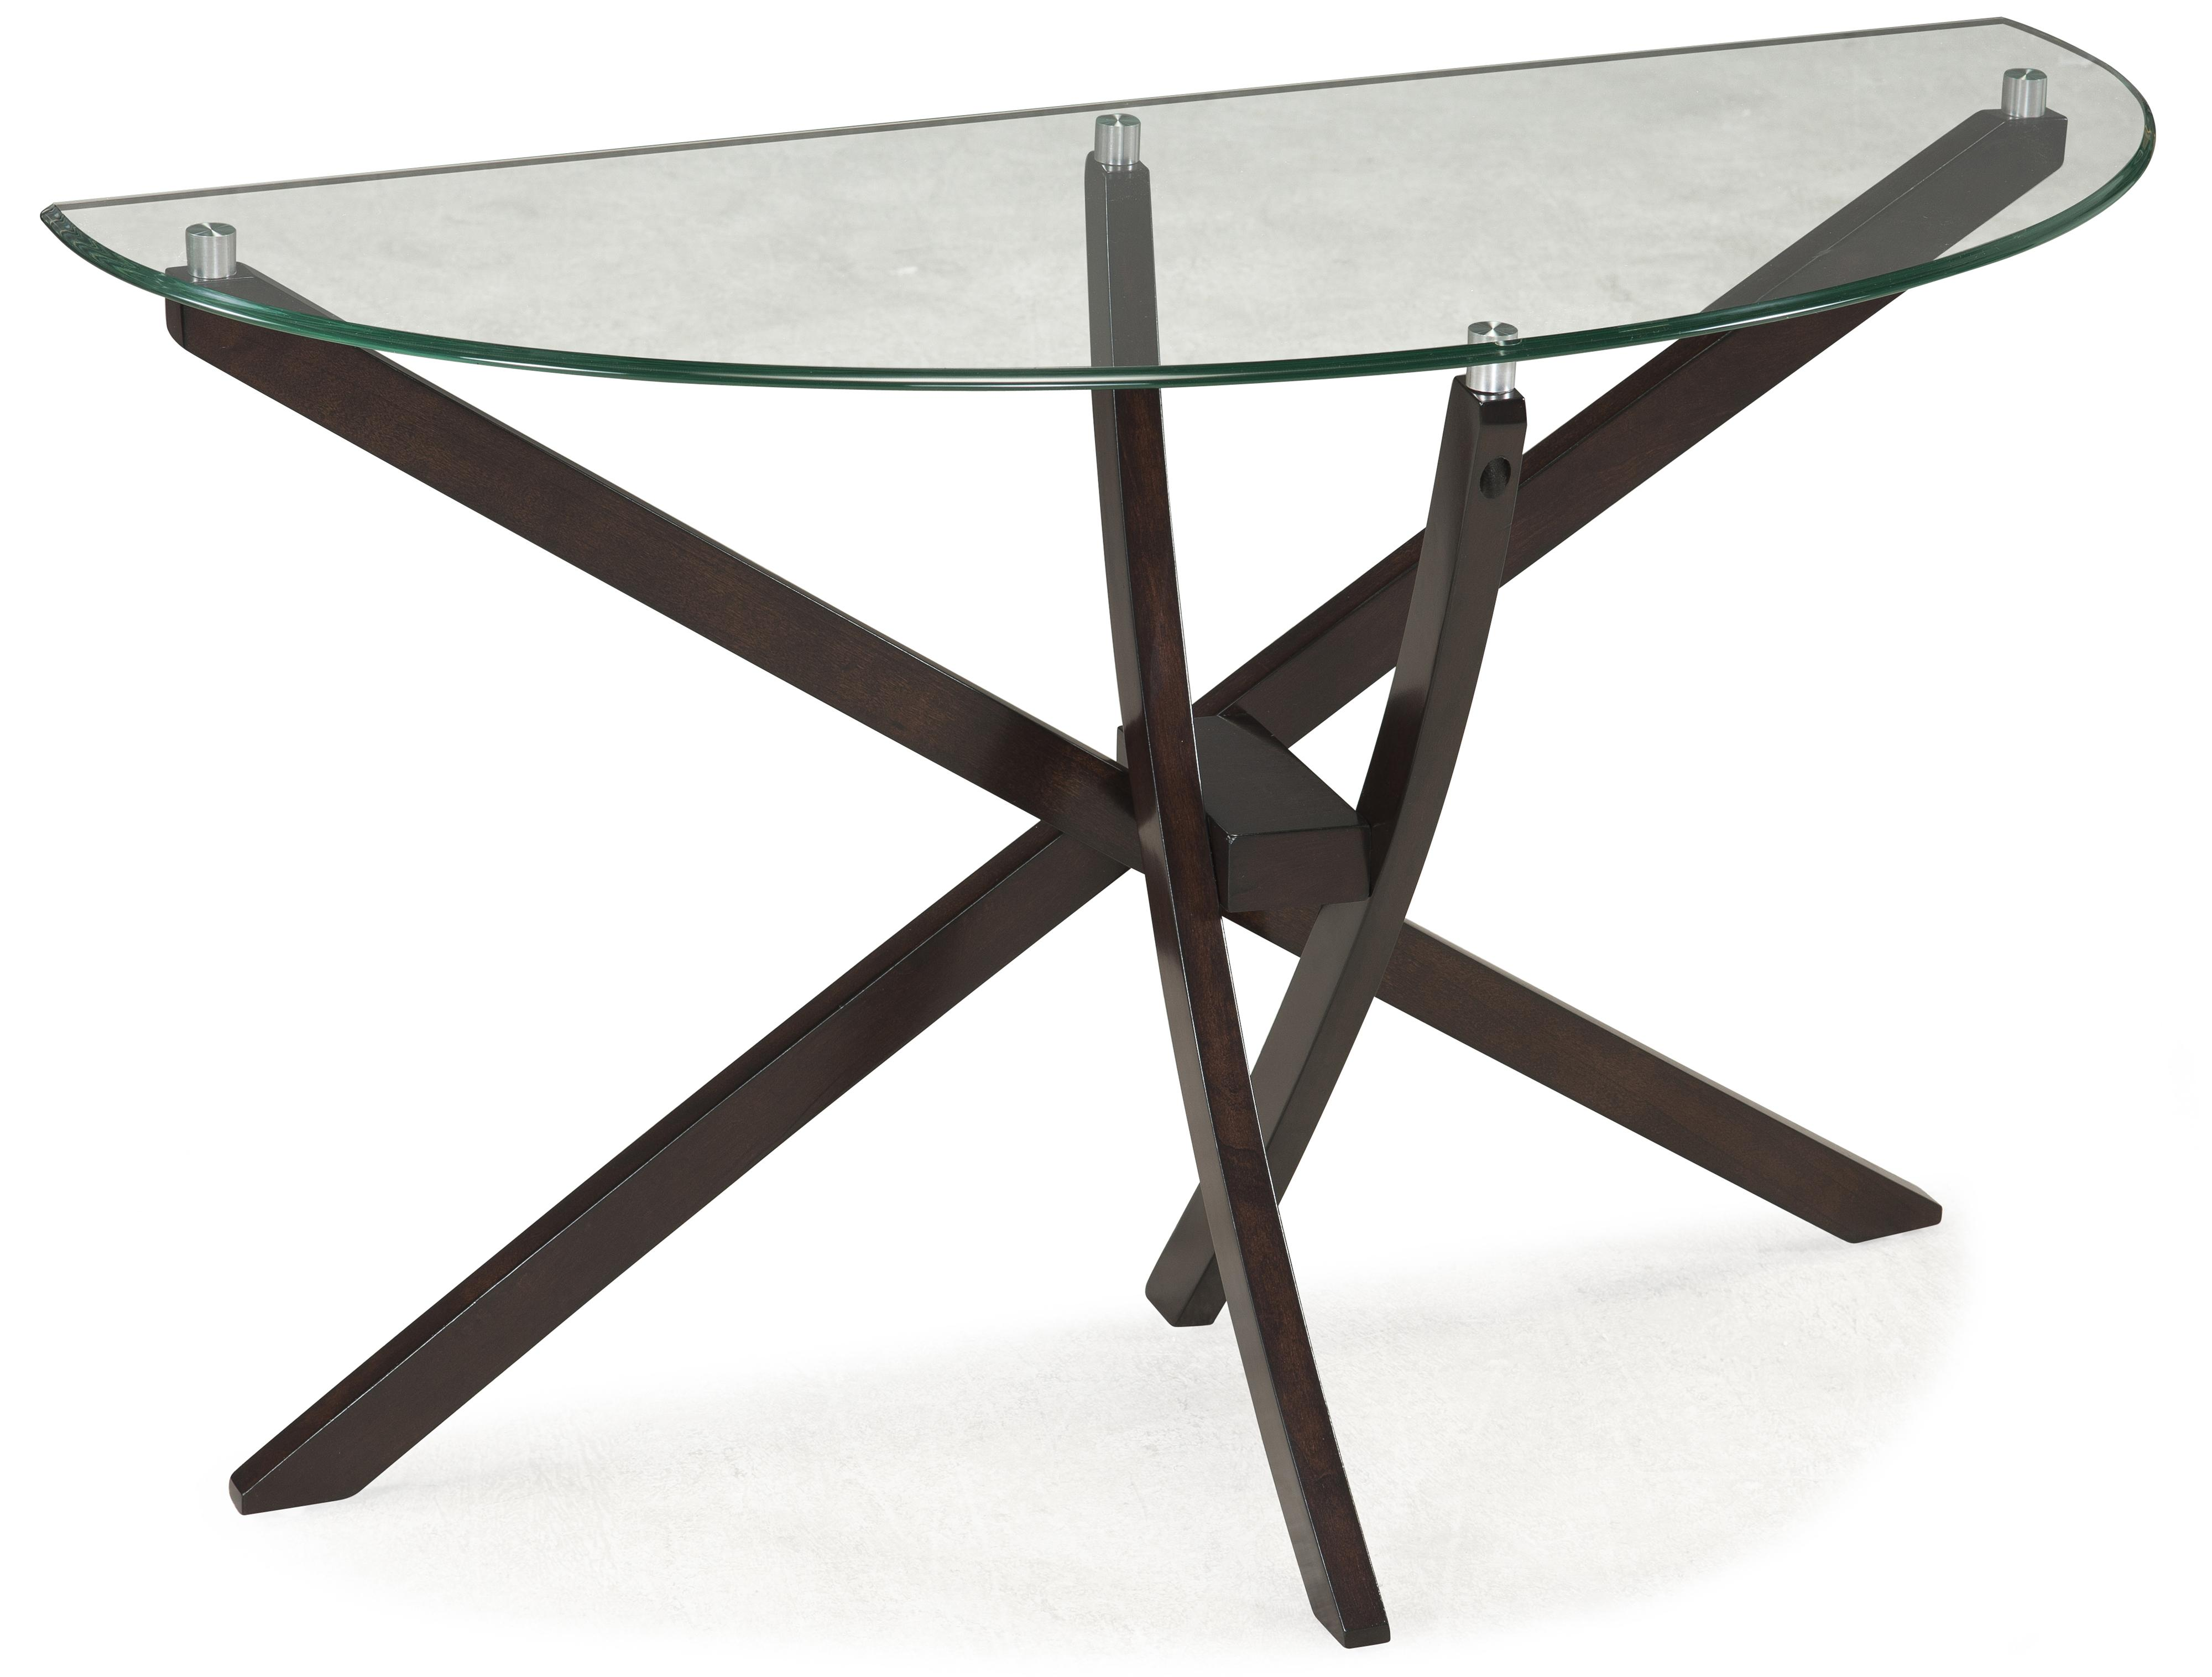 Demilune Sofa Table with Strut Base and Tempered Glass Top